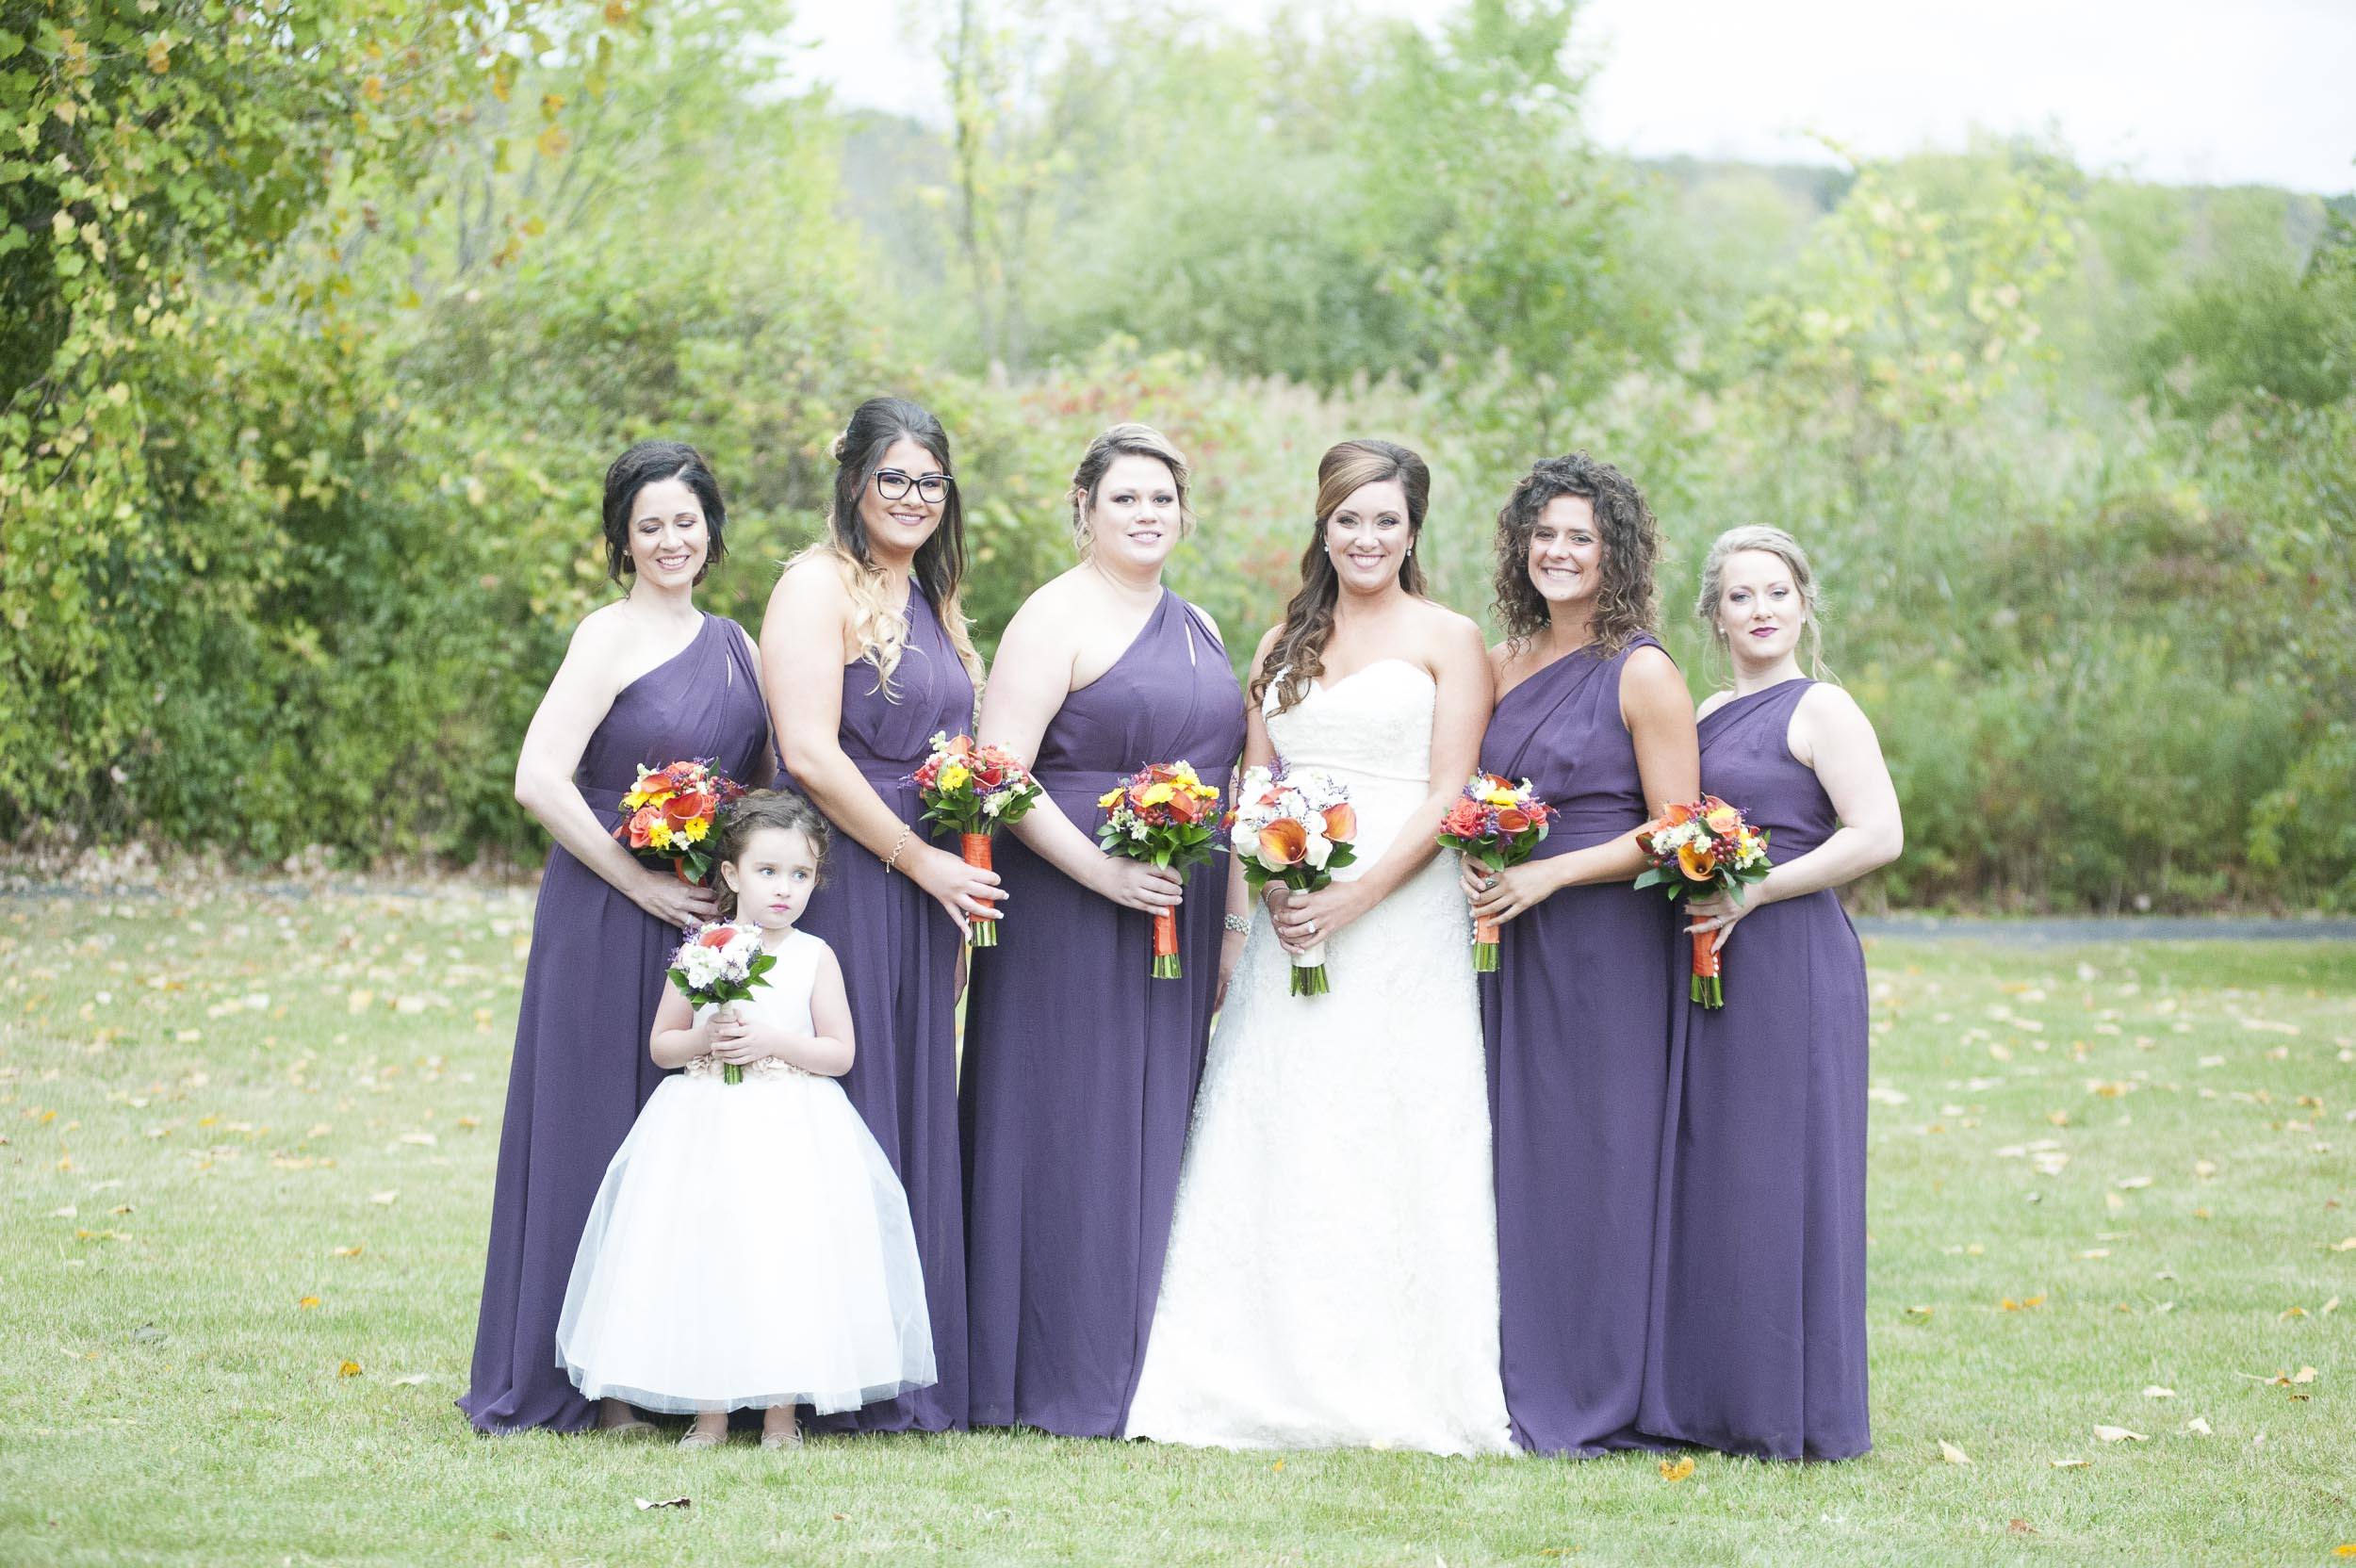 In the 4th image, the bridesmaid on the far left closed her eyes.